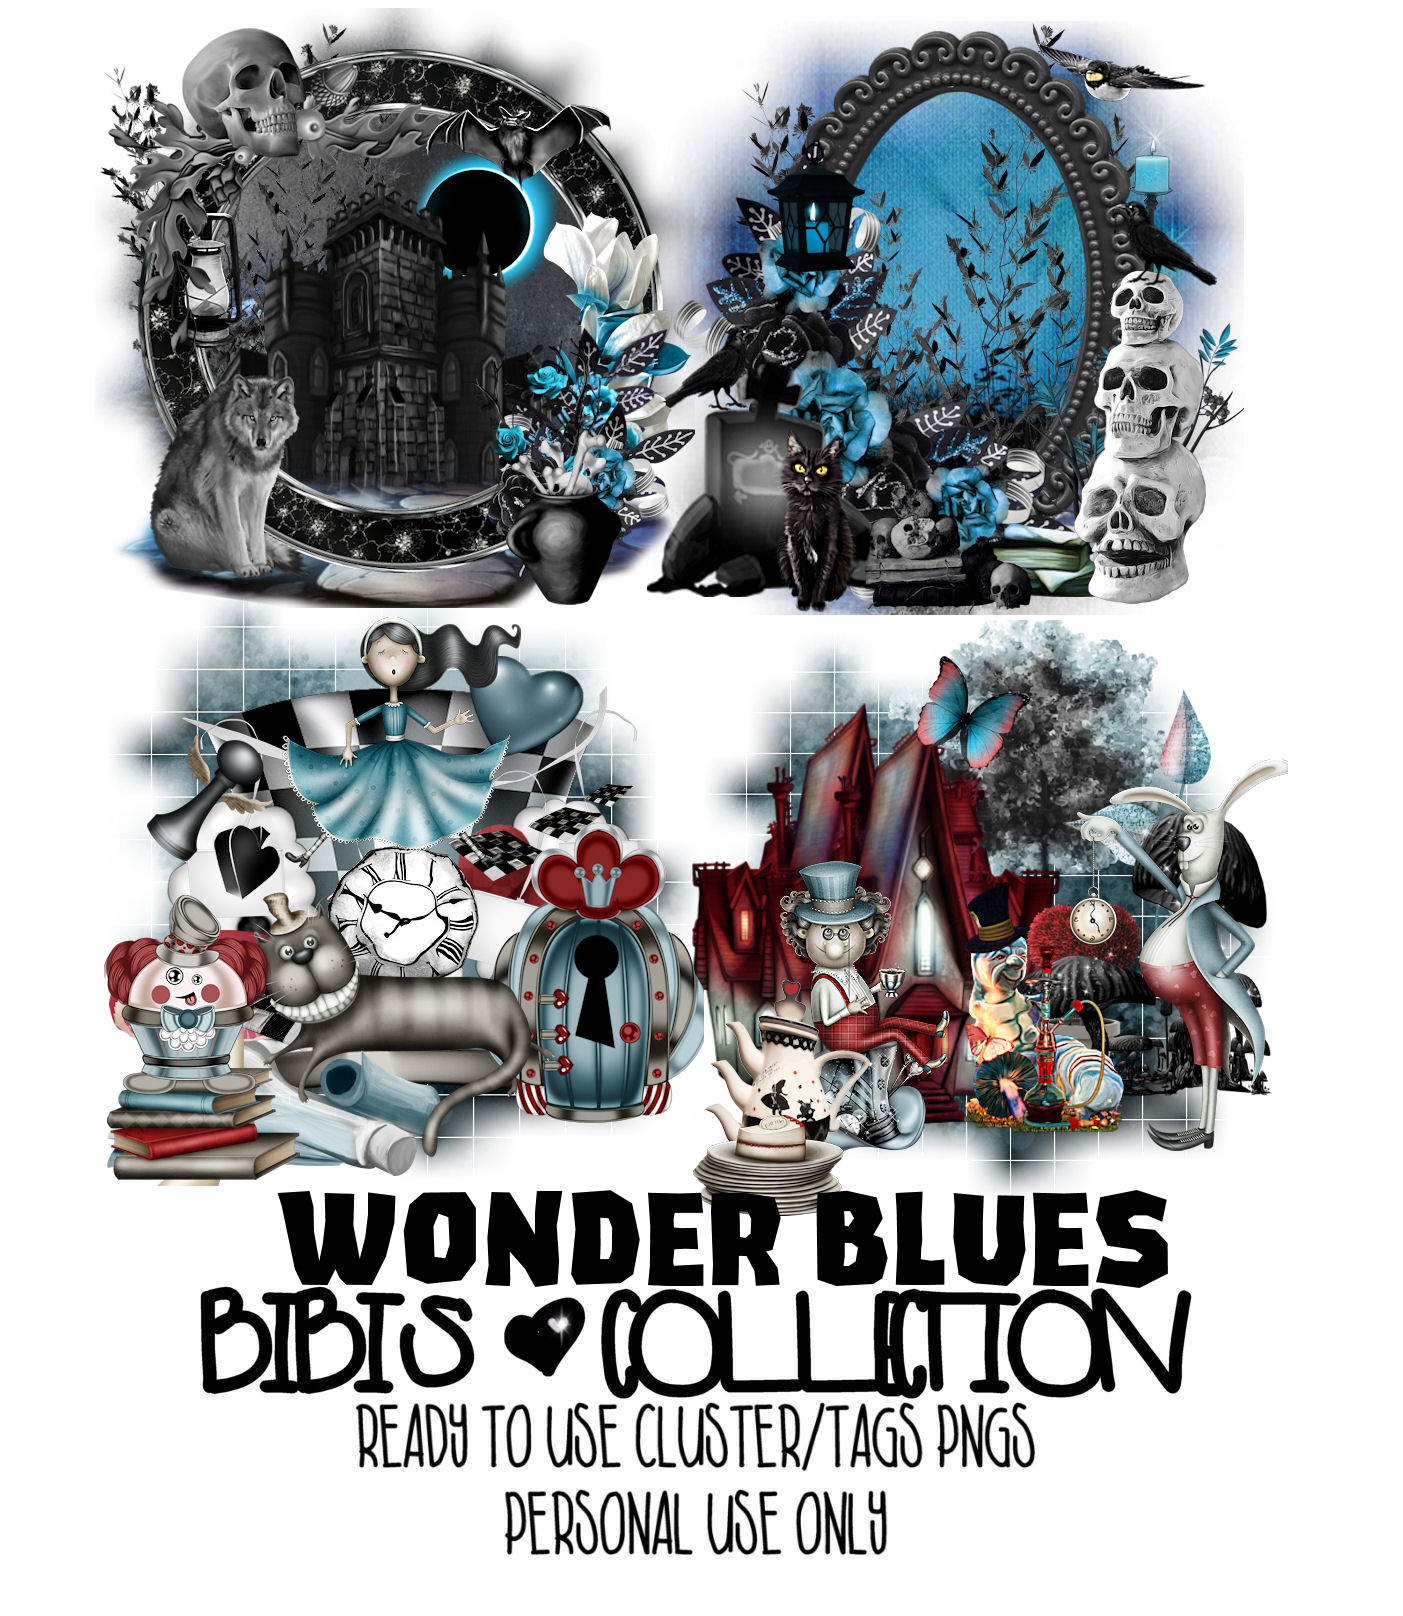 WONDER BLUES MIX READY CLUSTER TAGS PNG